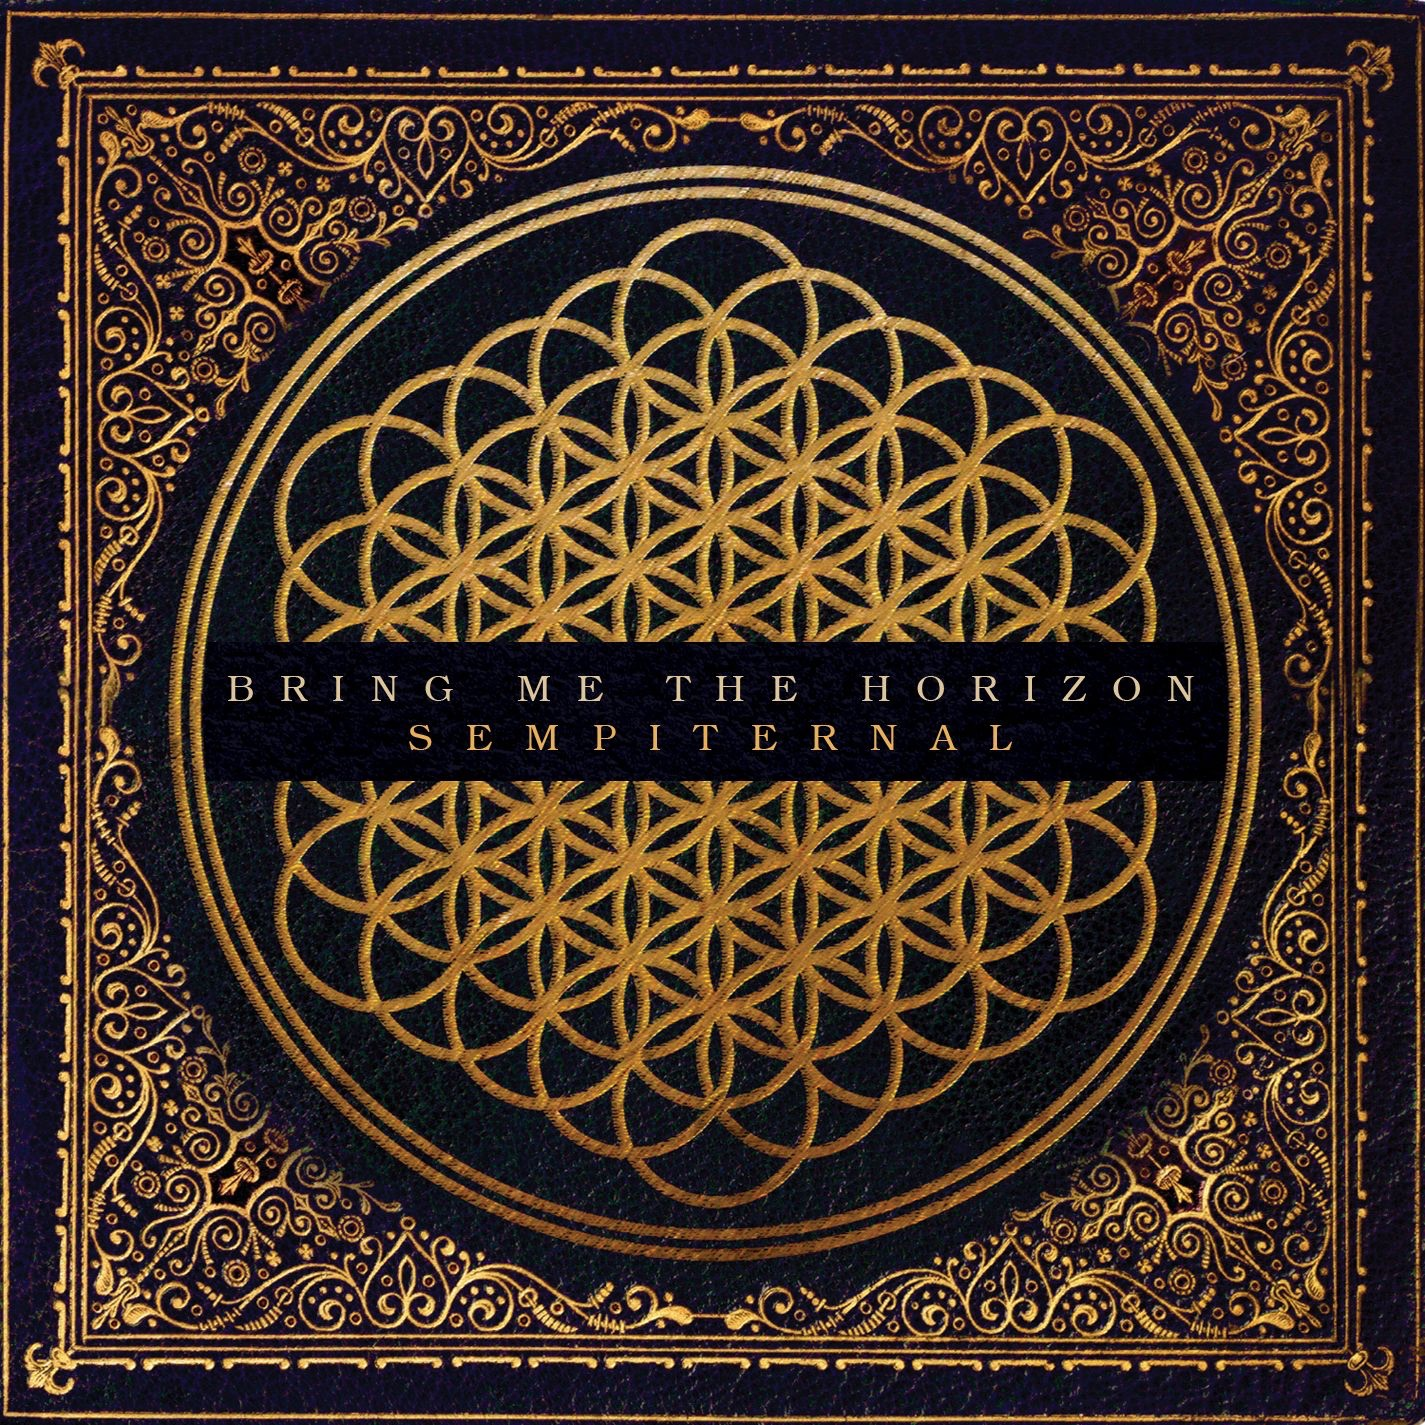 Bring Me The Horizon - Sempiternal [Deluxe Edition] (2013)